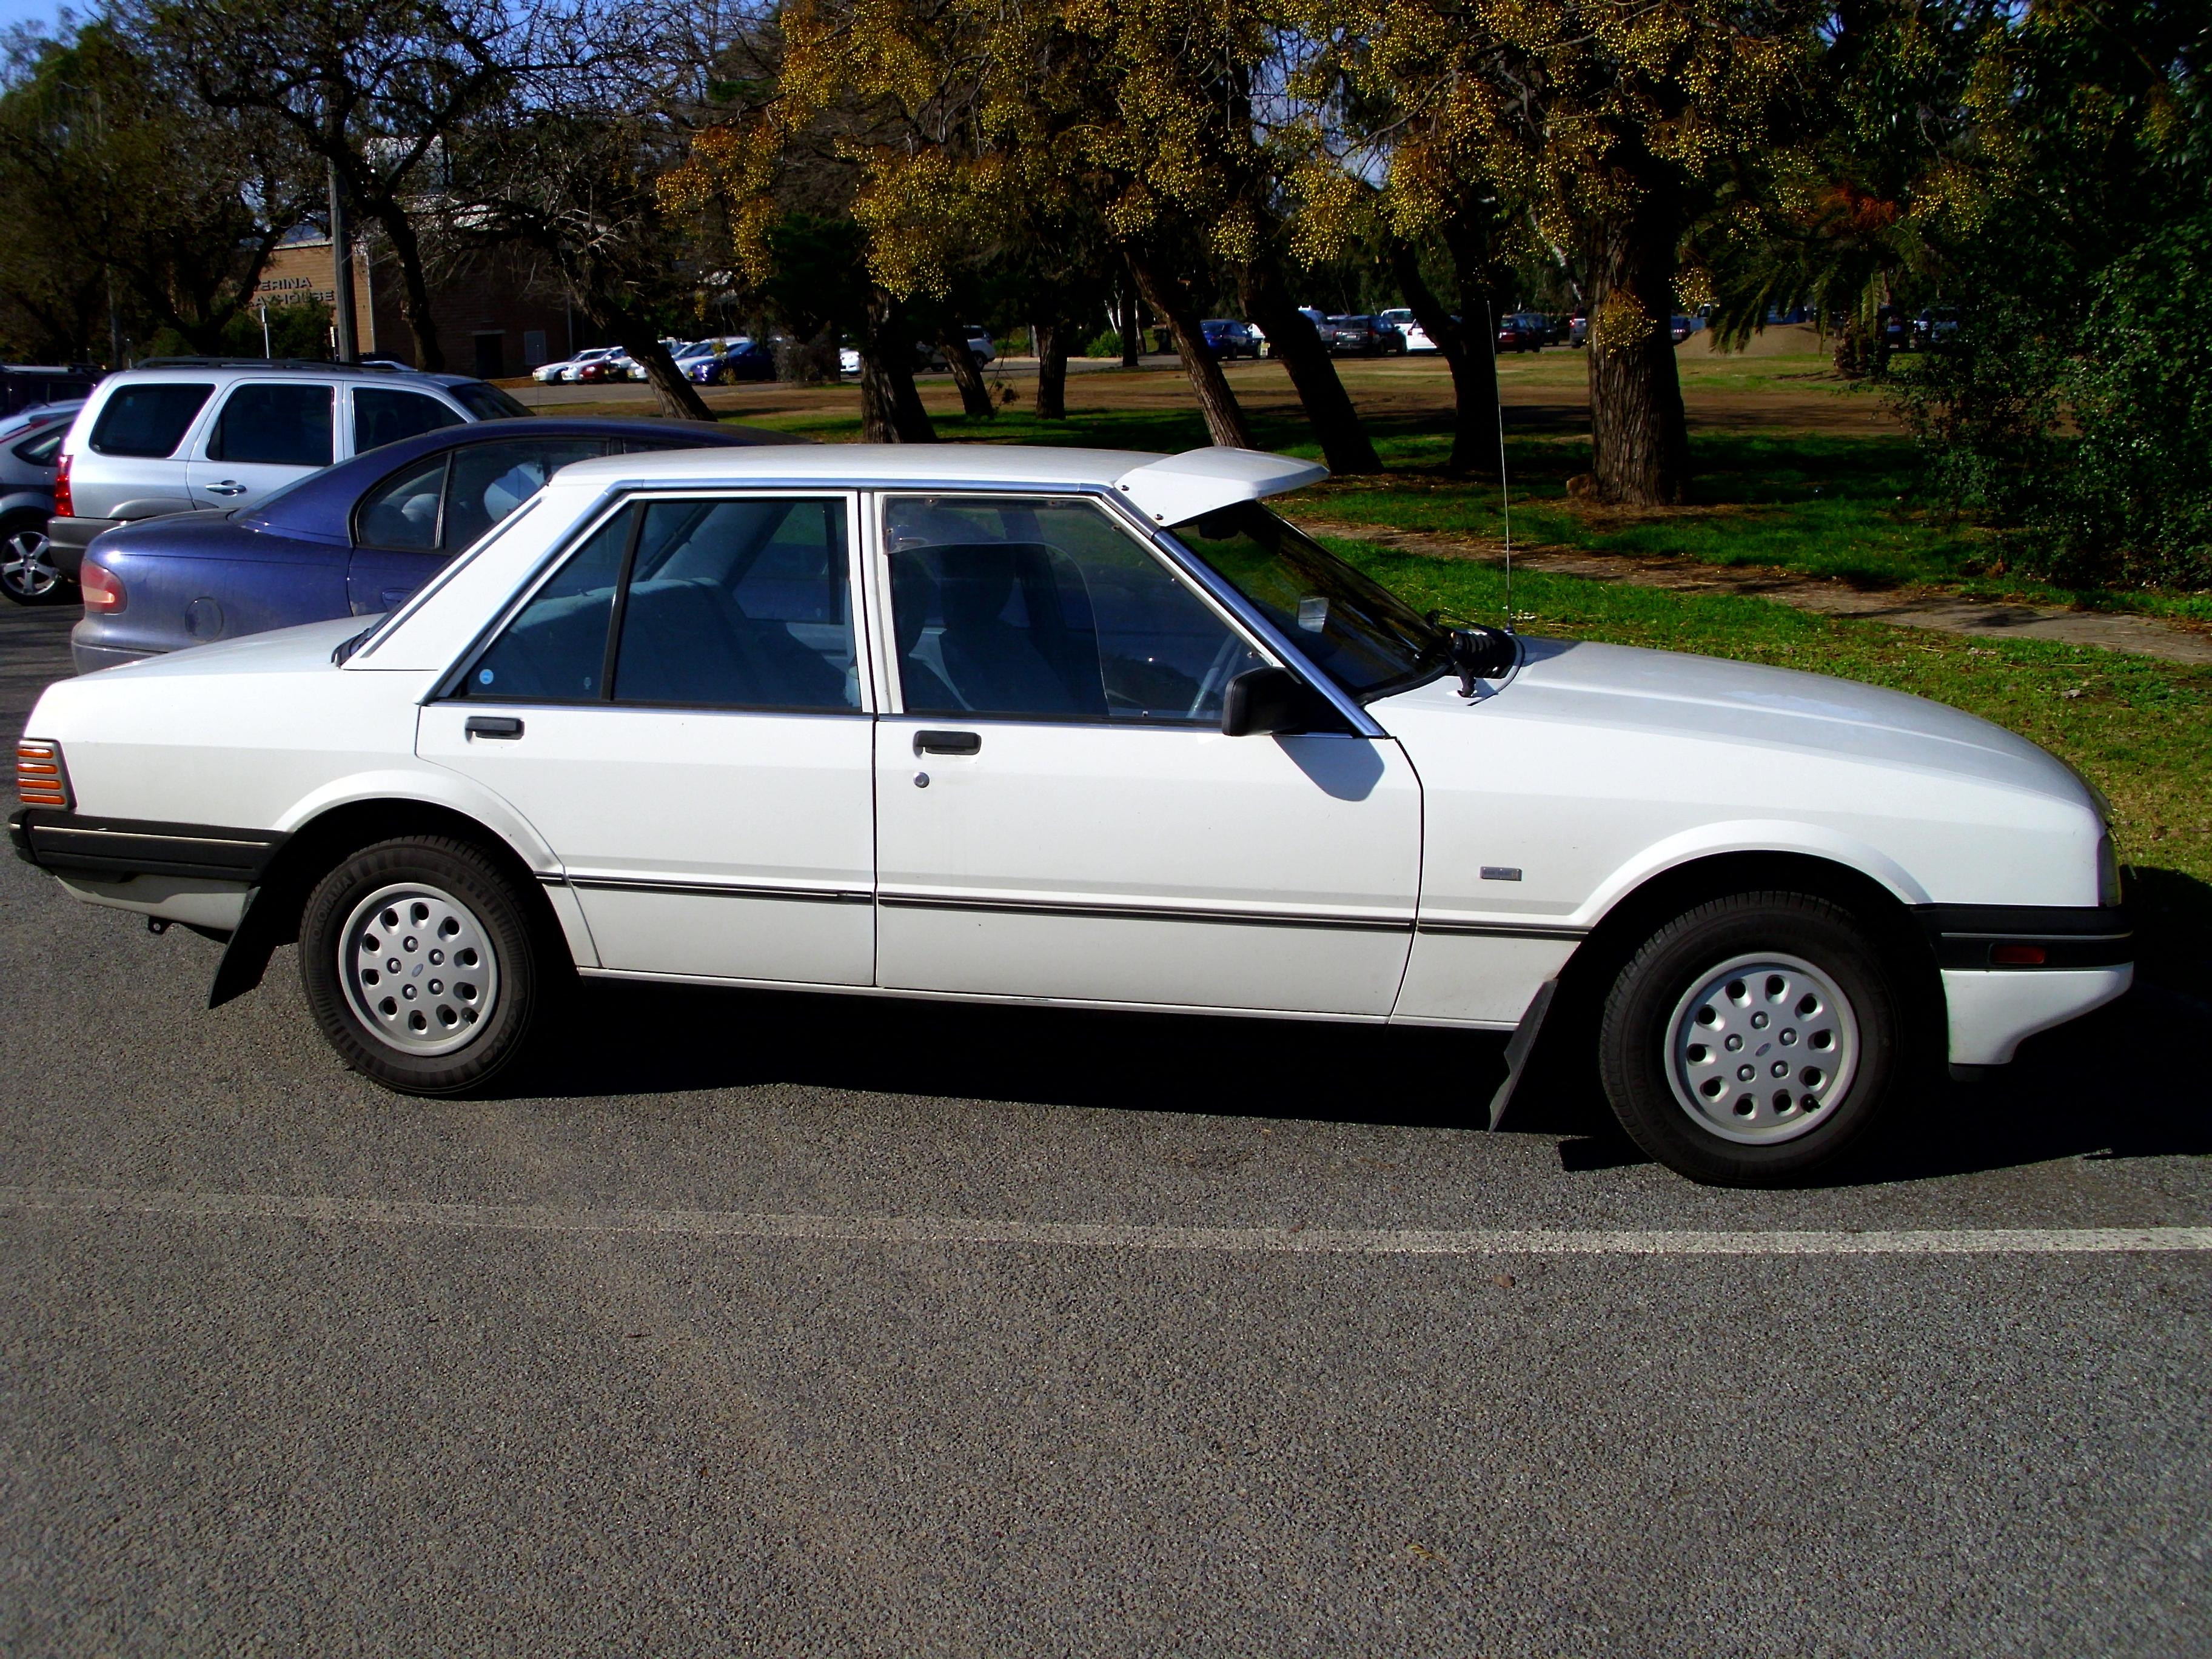 Ford Build Your Own >> File:1984-1986 Ford XF Falcon GL sedan (2).jpg - Wikimedia Commons